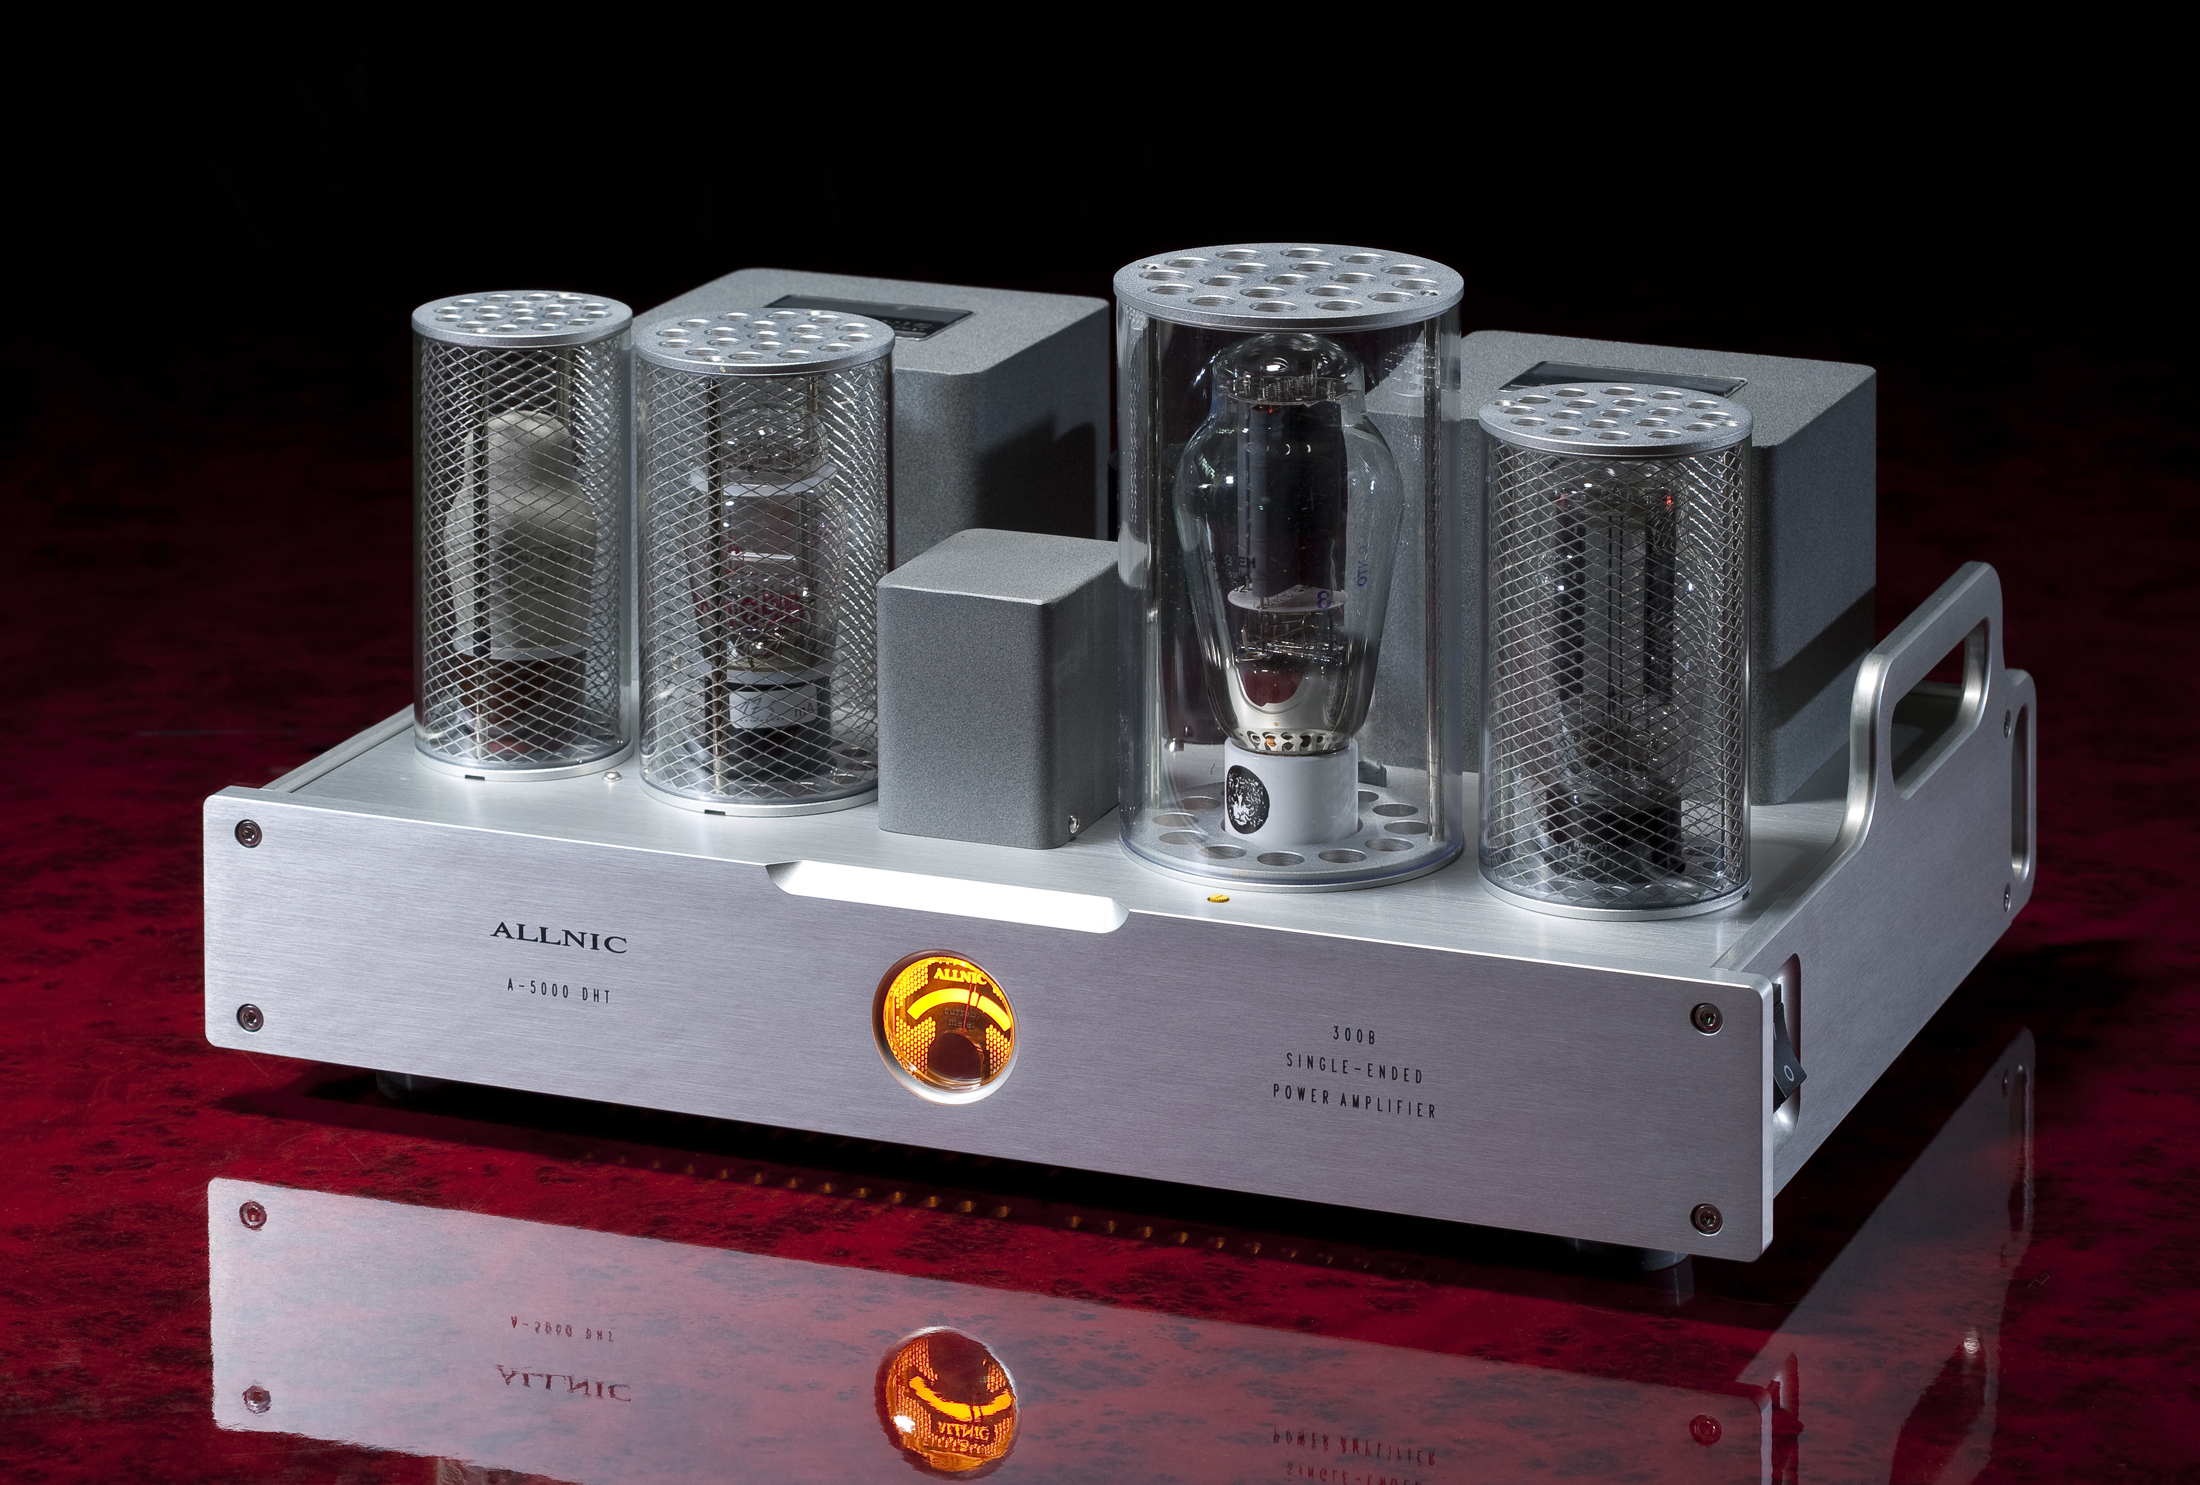 A-5000 DHT Monoblock Amplifier